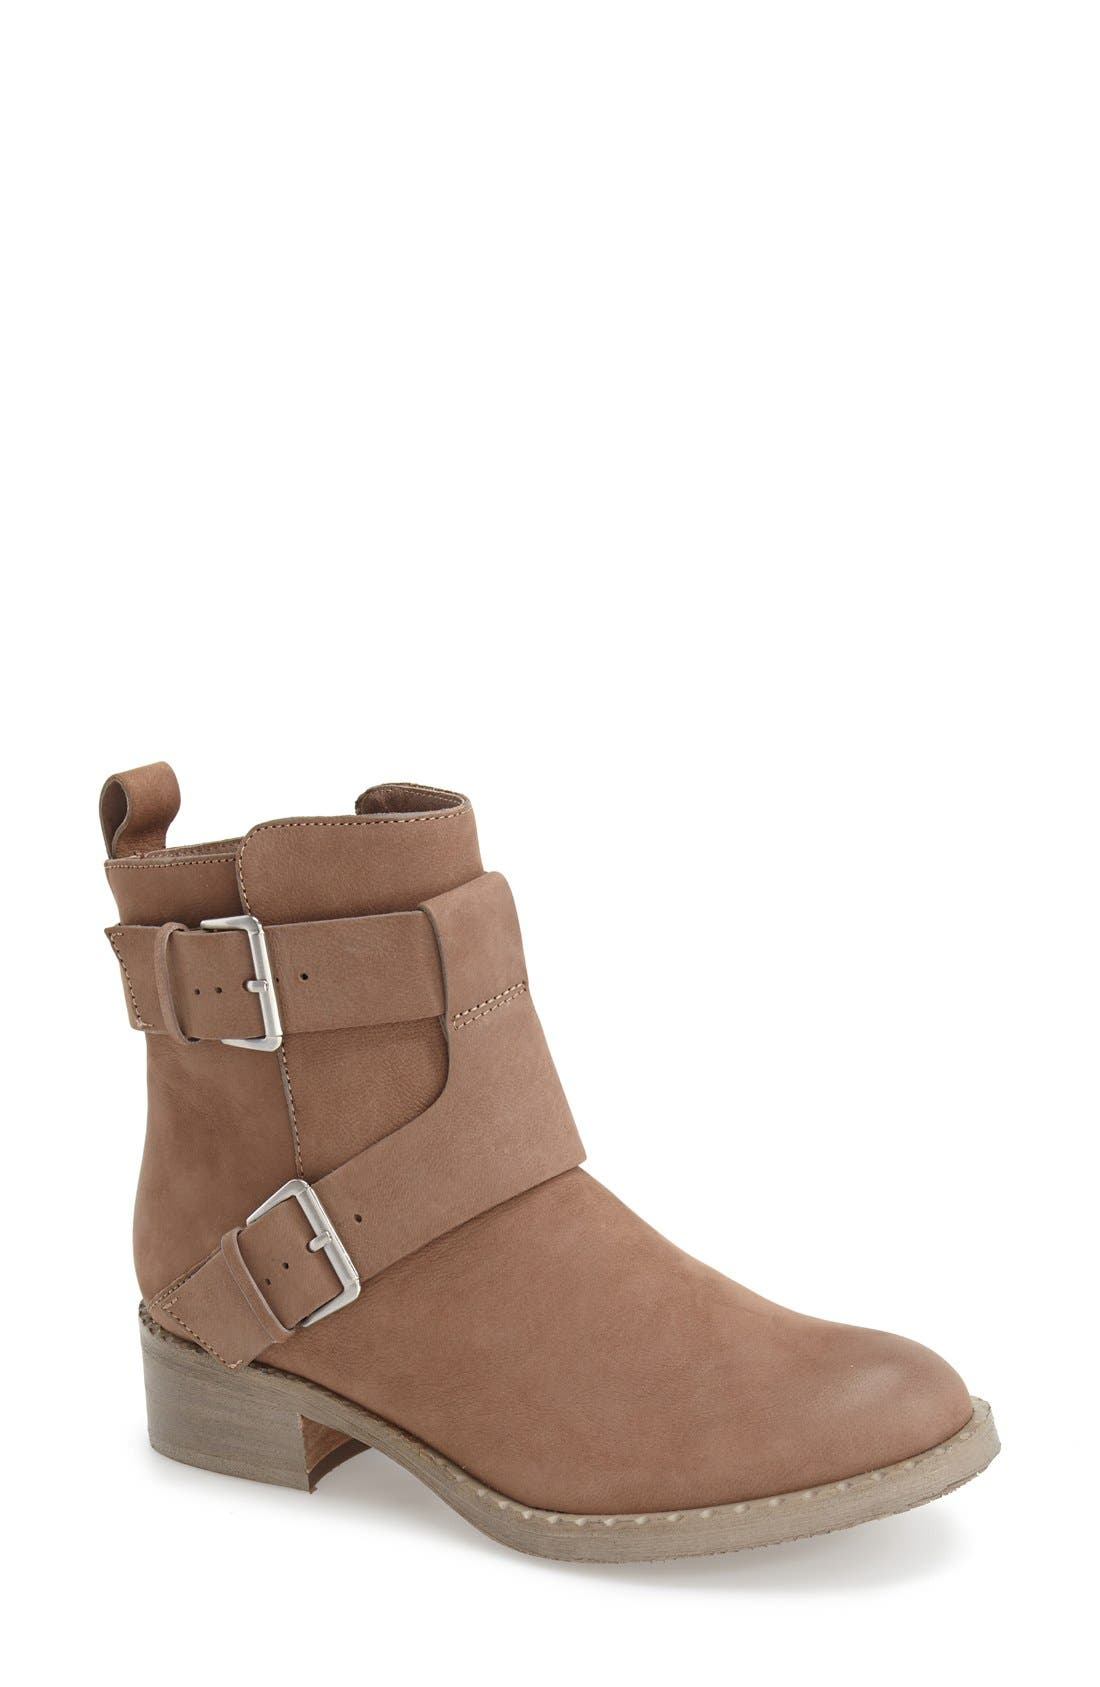 by Kenneth Cole 'Best Of' Boot,                             Main thumbnail 1, color,                             Beige Nubuck